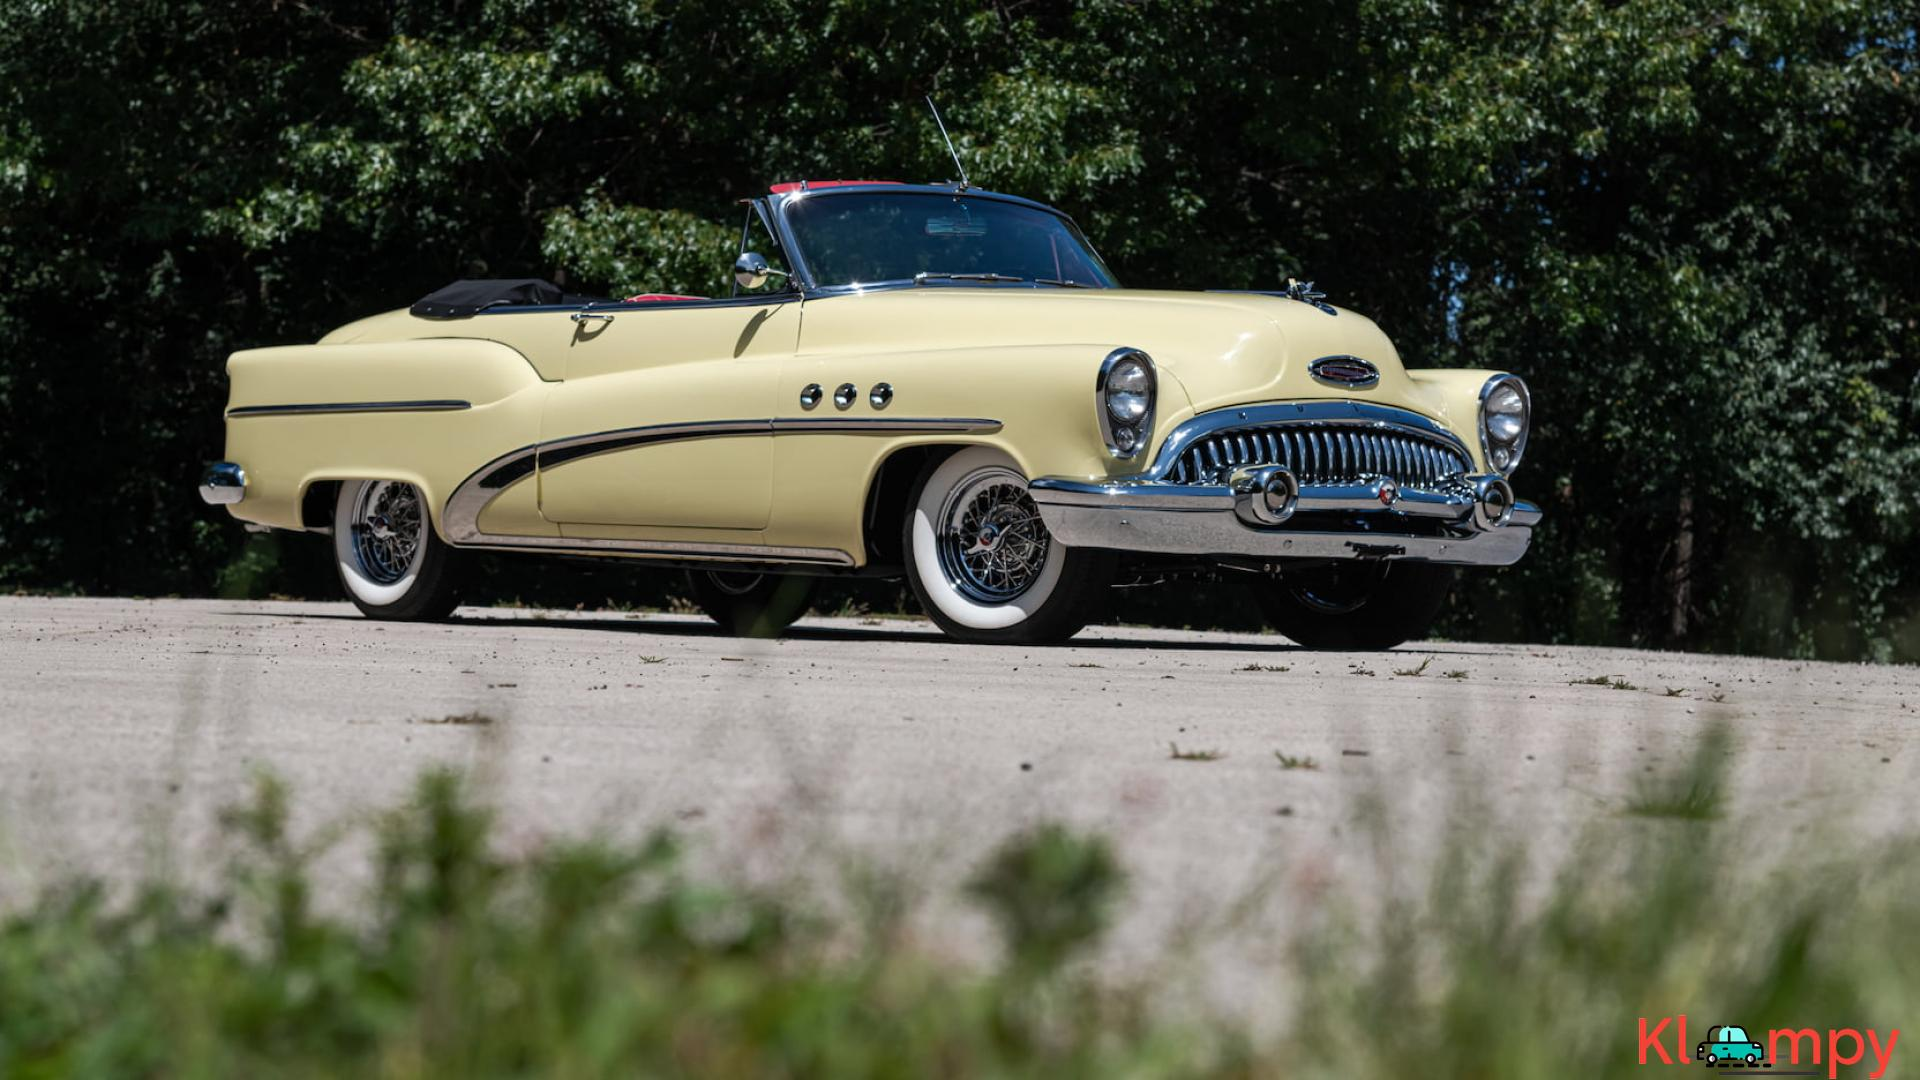 1953 Buick Super Eight Convertible - 1/15